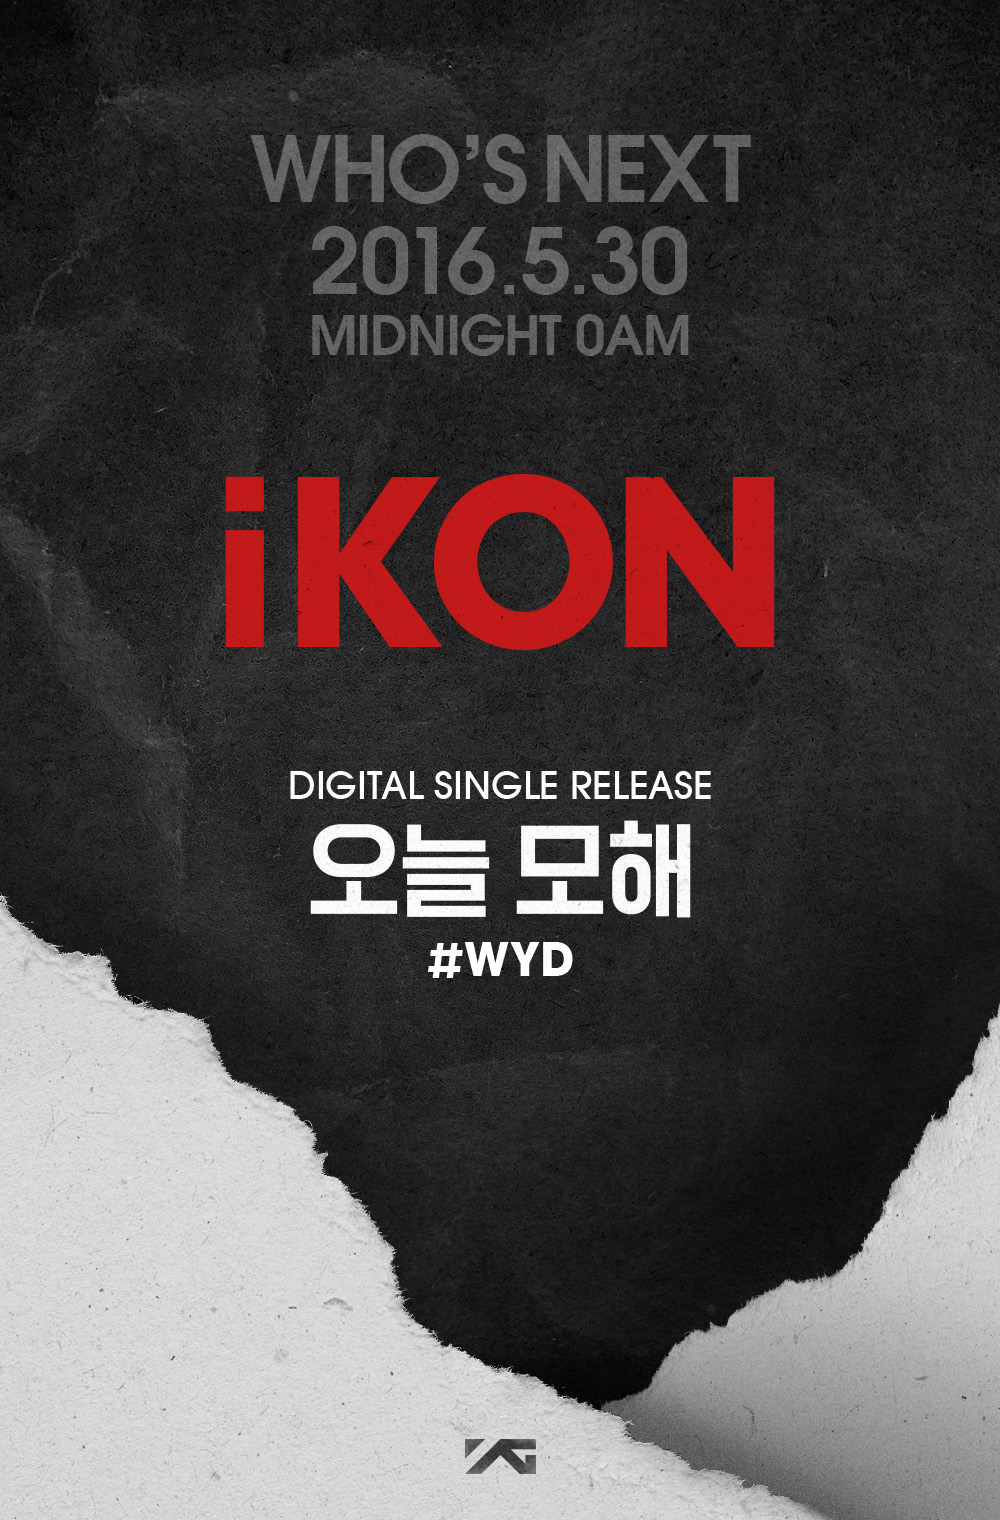 Update: YG Entertainment Reveals iKON Is Next